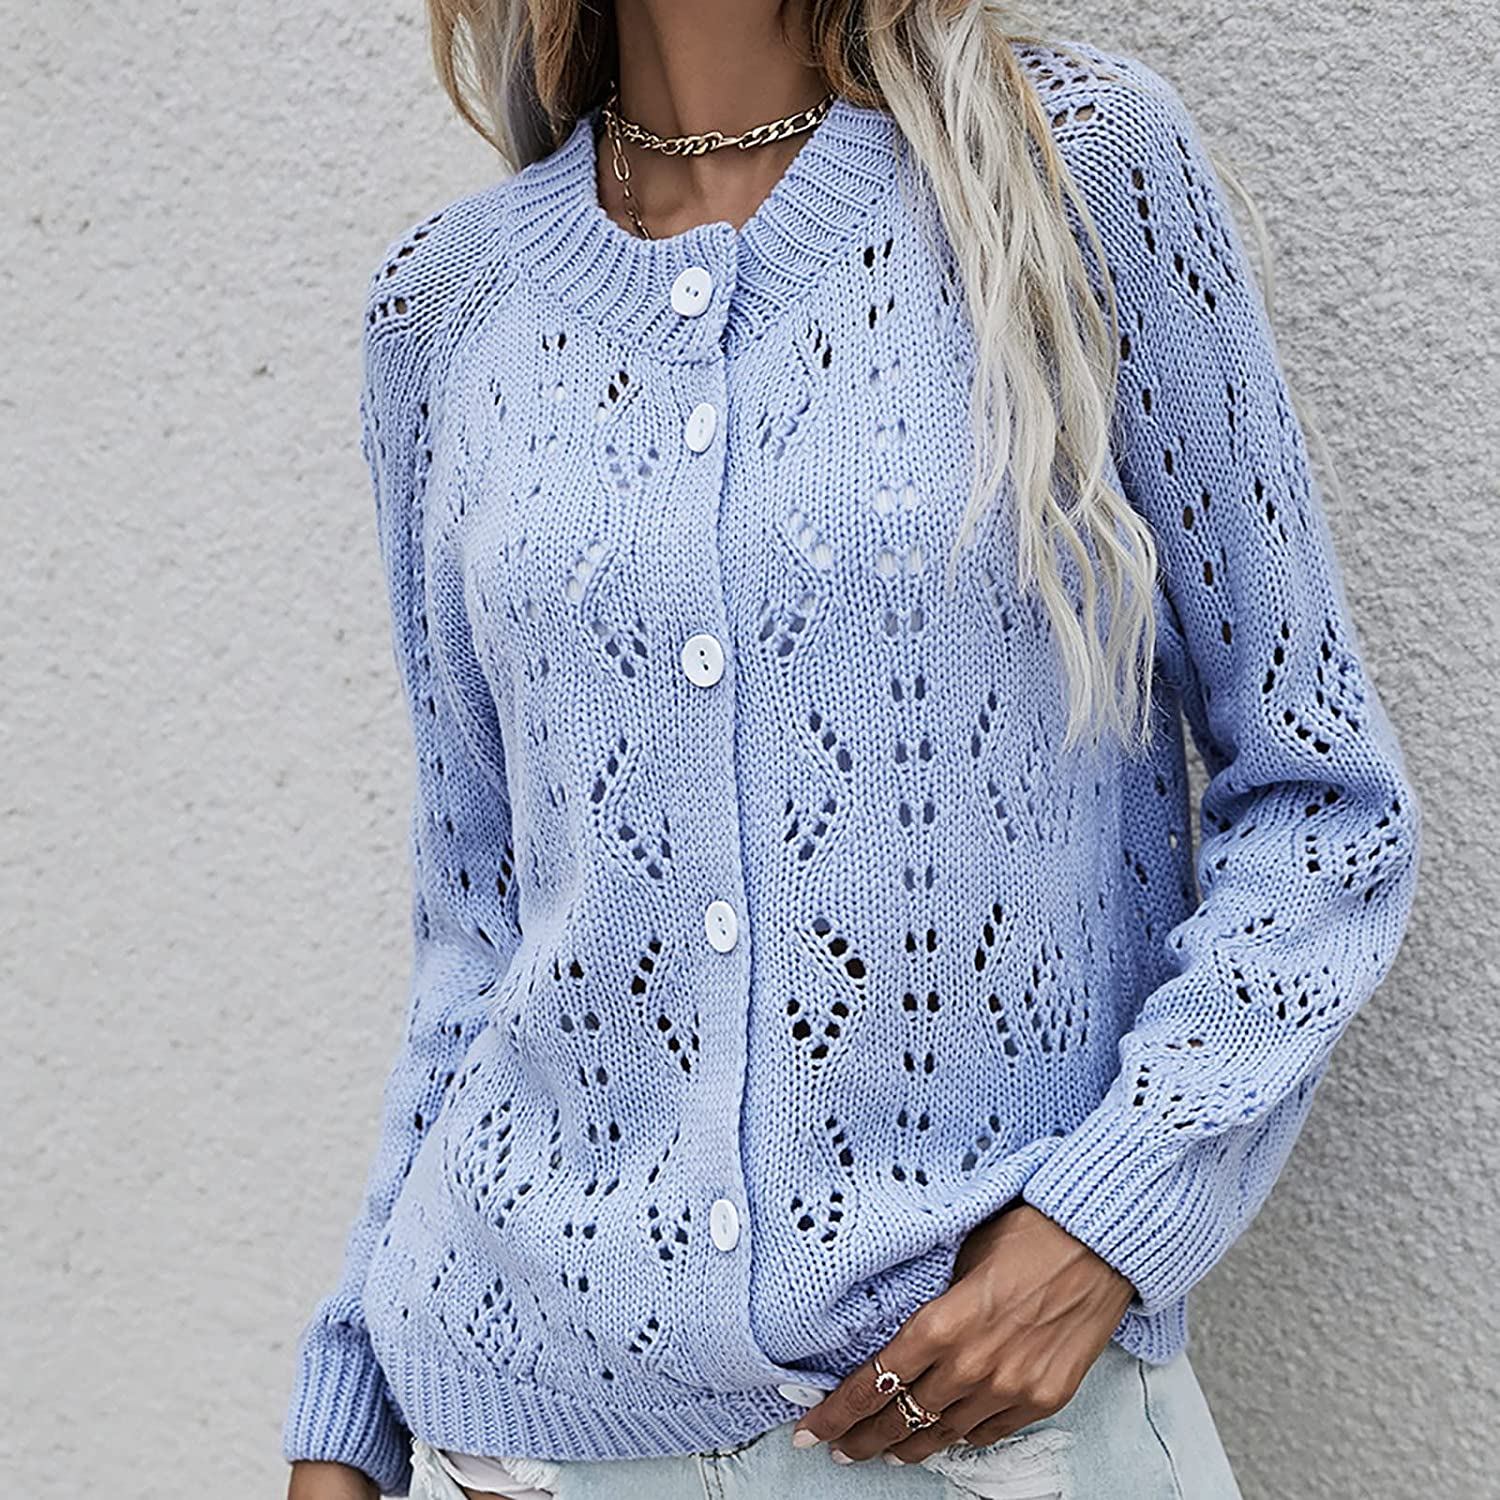 GBSELL Women's Cardigan Sweater, Long Sleeve Button Down Oversized Chunky Open Front Cable Knit Button Closure with Pockets (S, Light Blue)